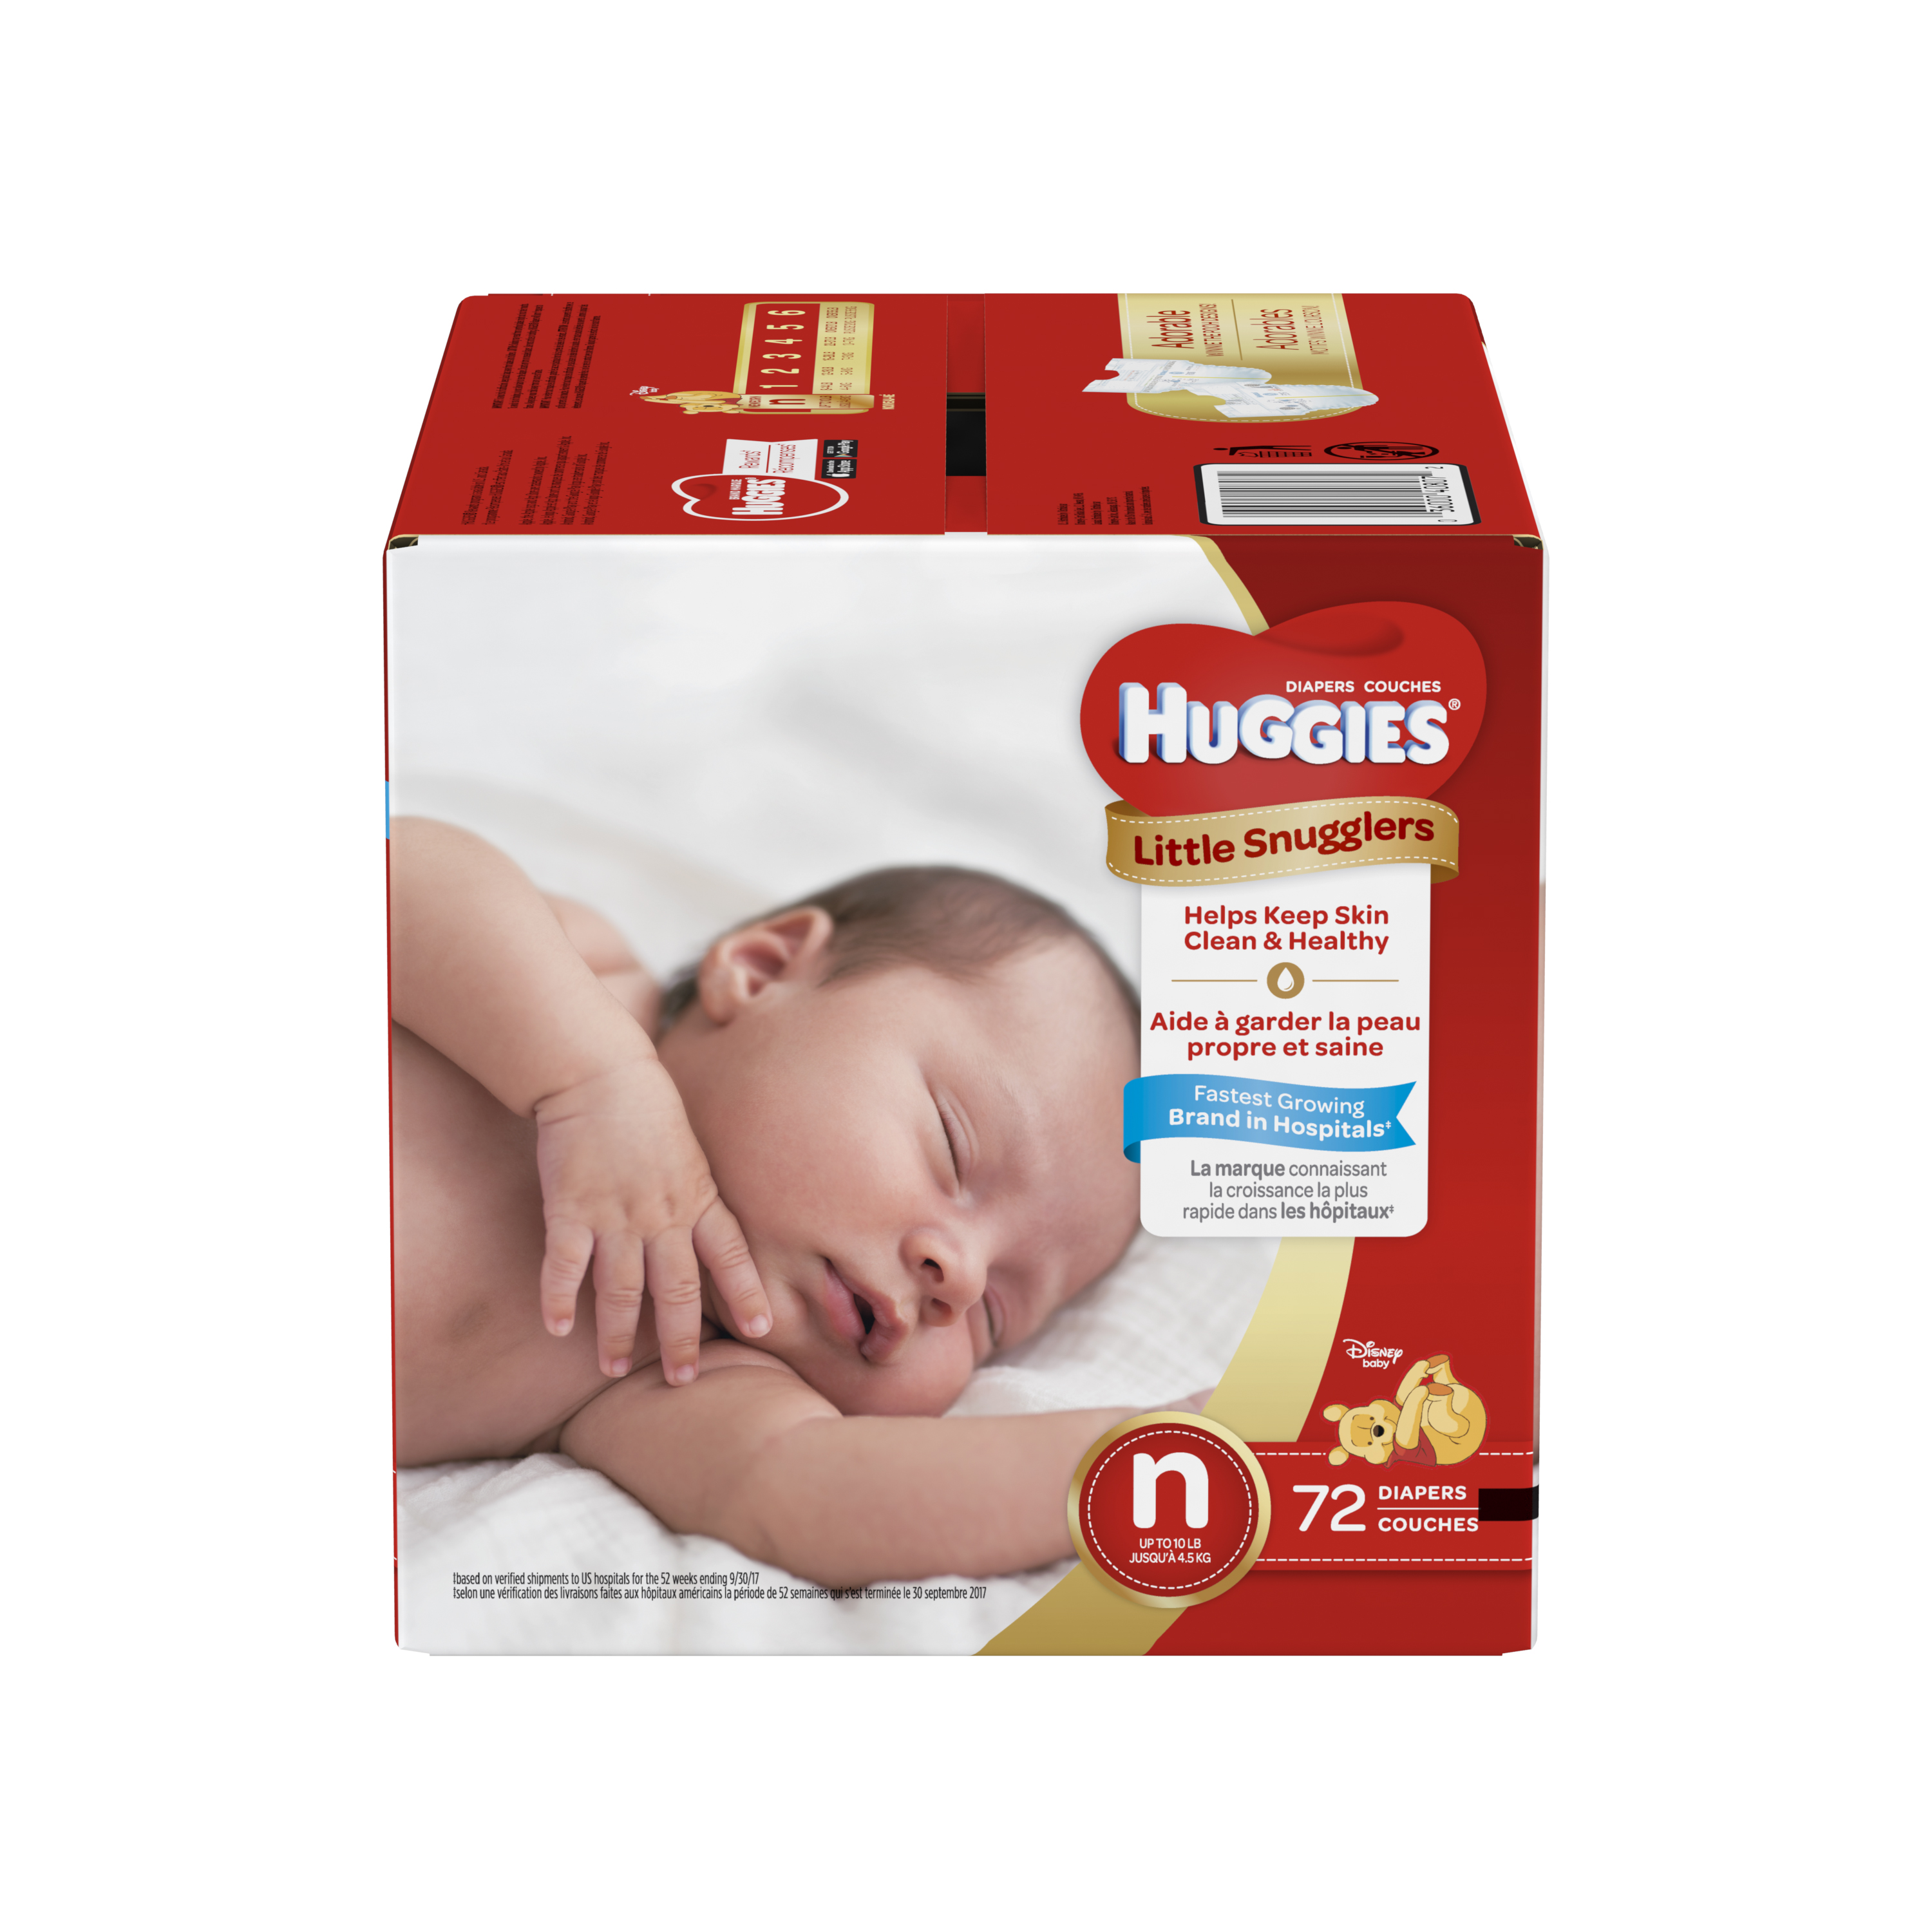 HUGGIES Little Snugglers Diapers, Size Newborn, 72 Diapers